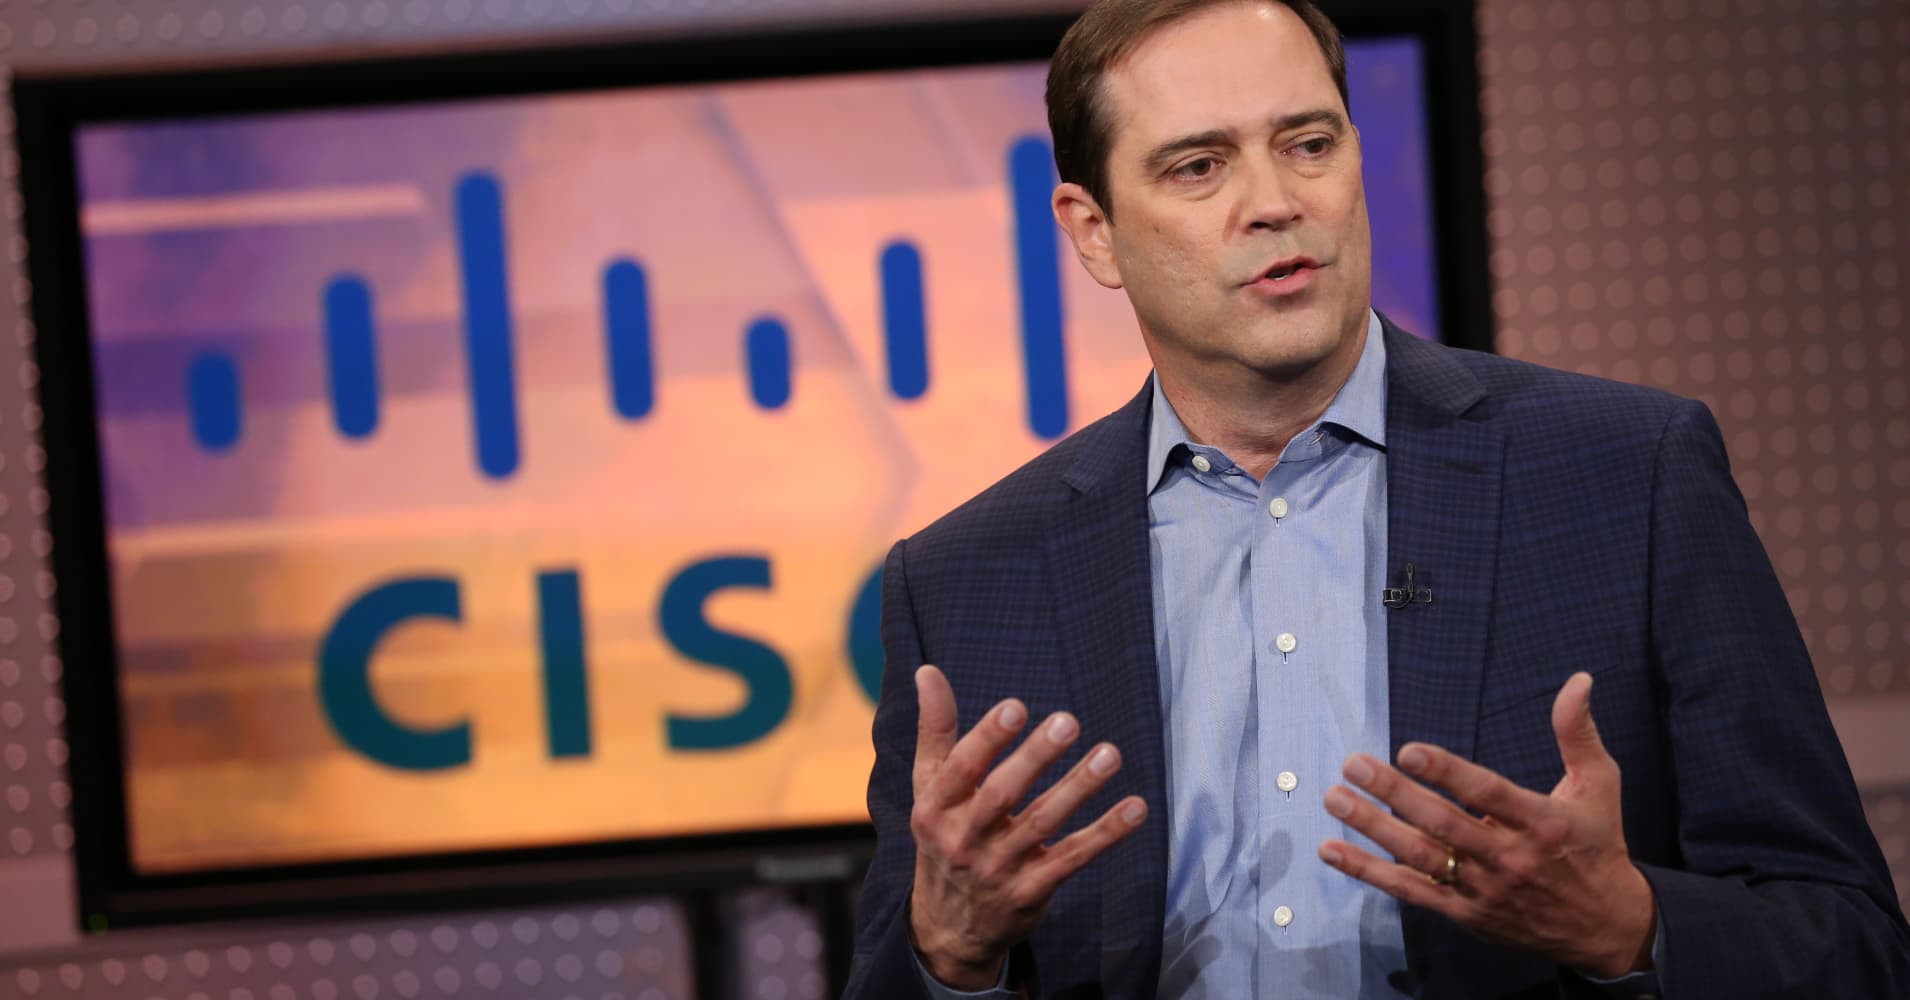 Cisco to buy semiconductor company Luxtera in a $660 million deal